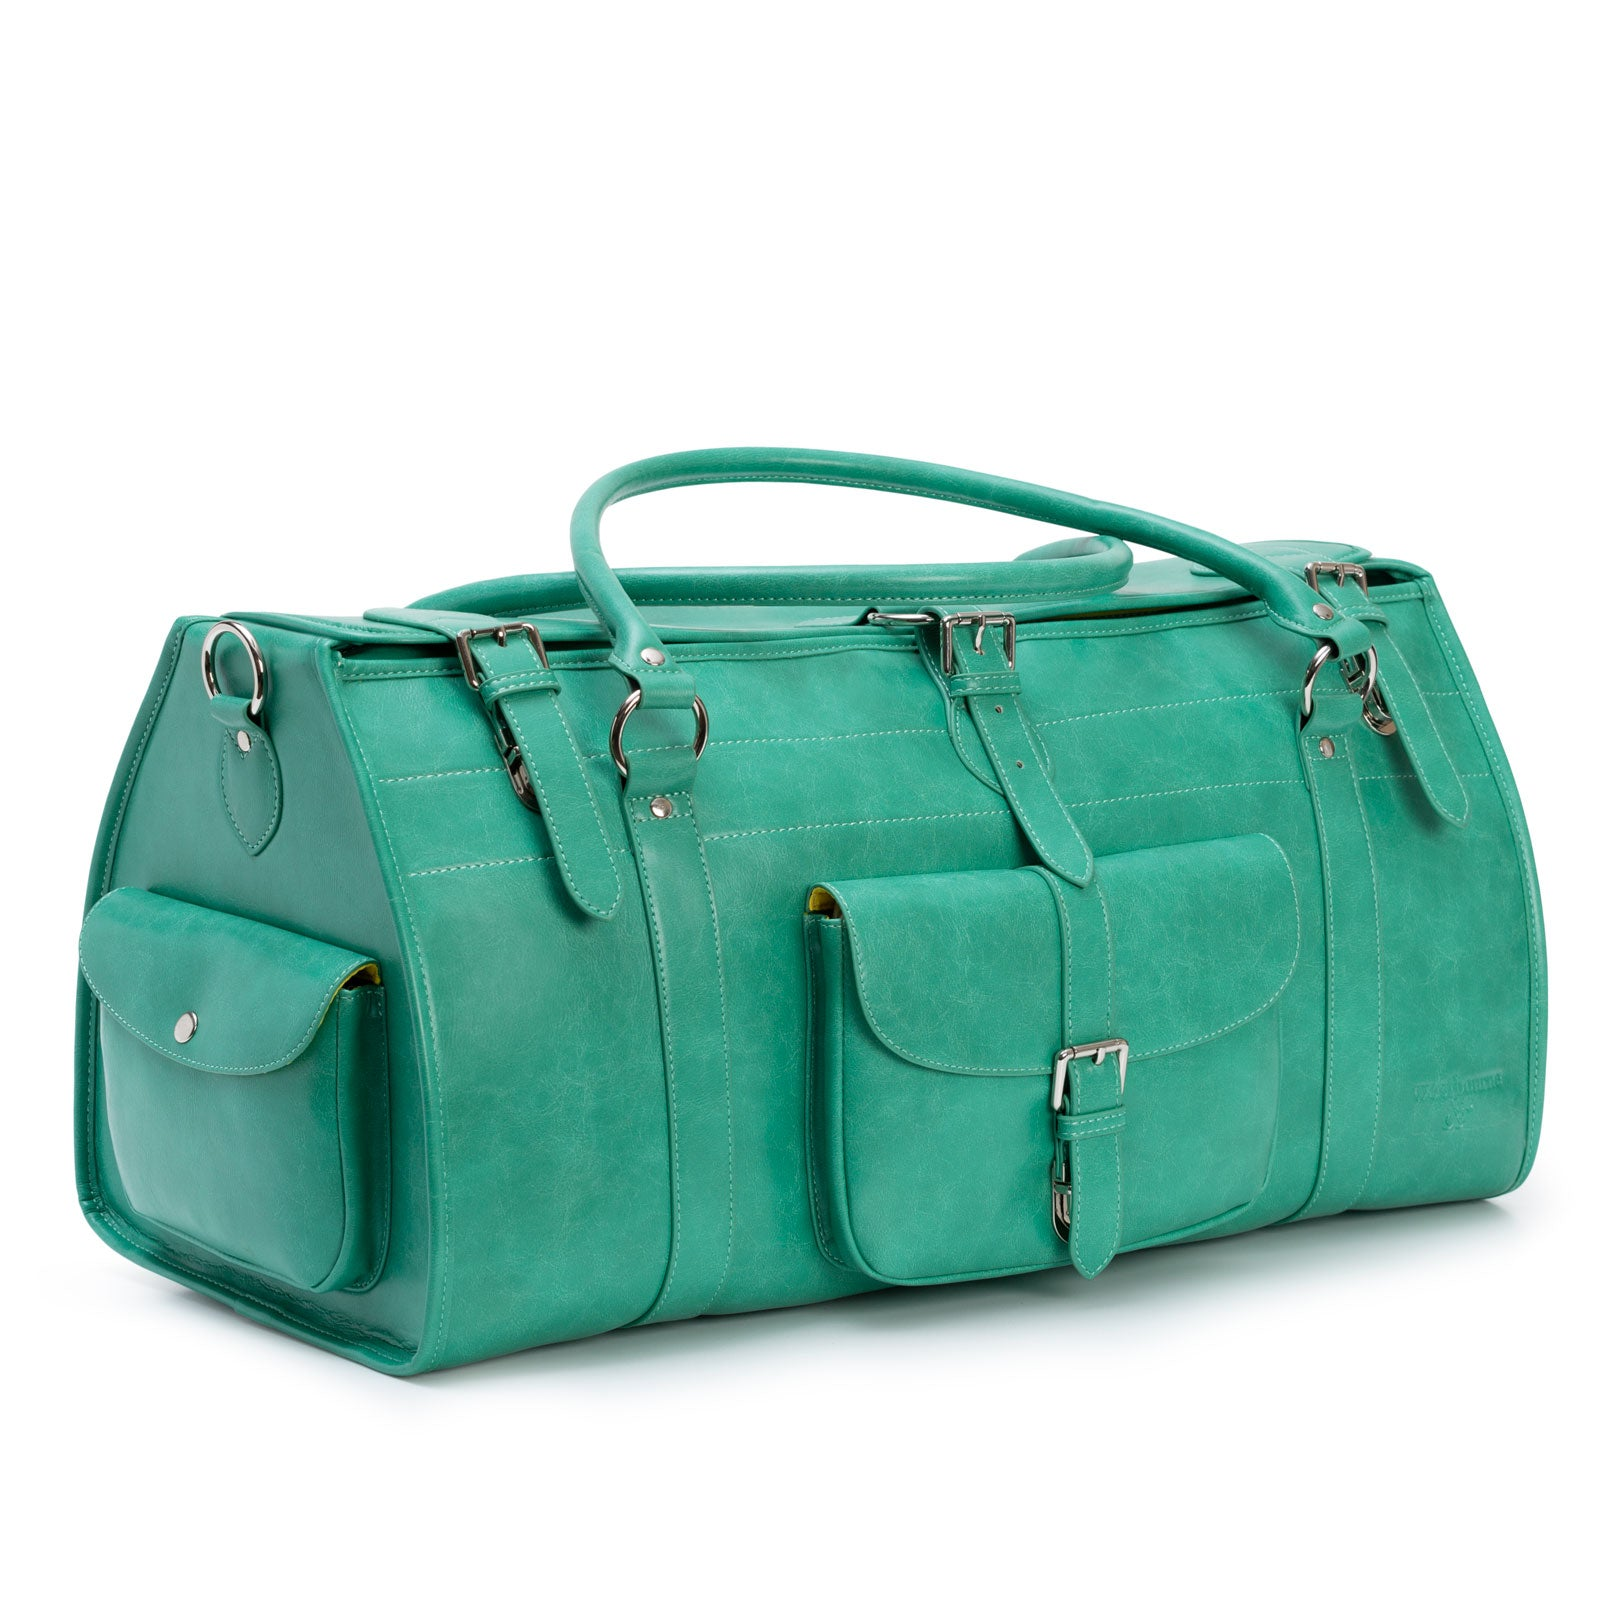 Gloucester green leather travel bag